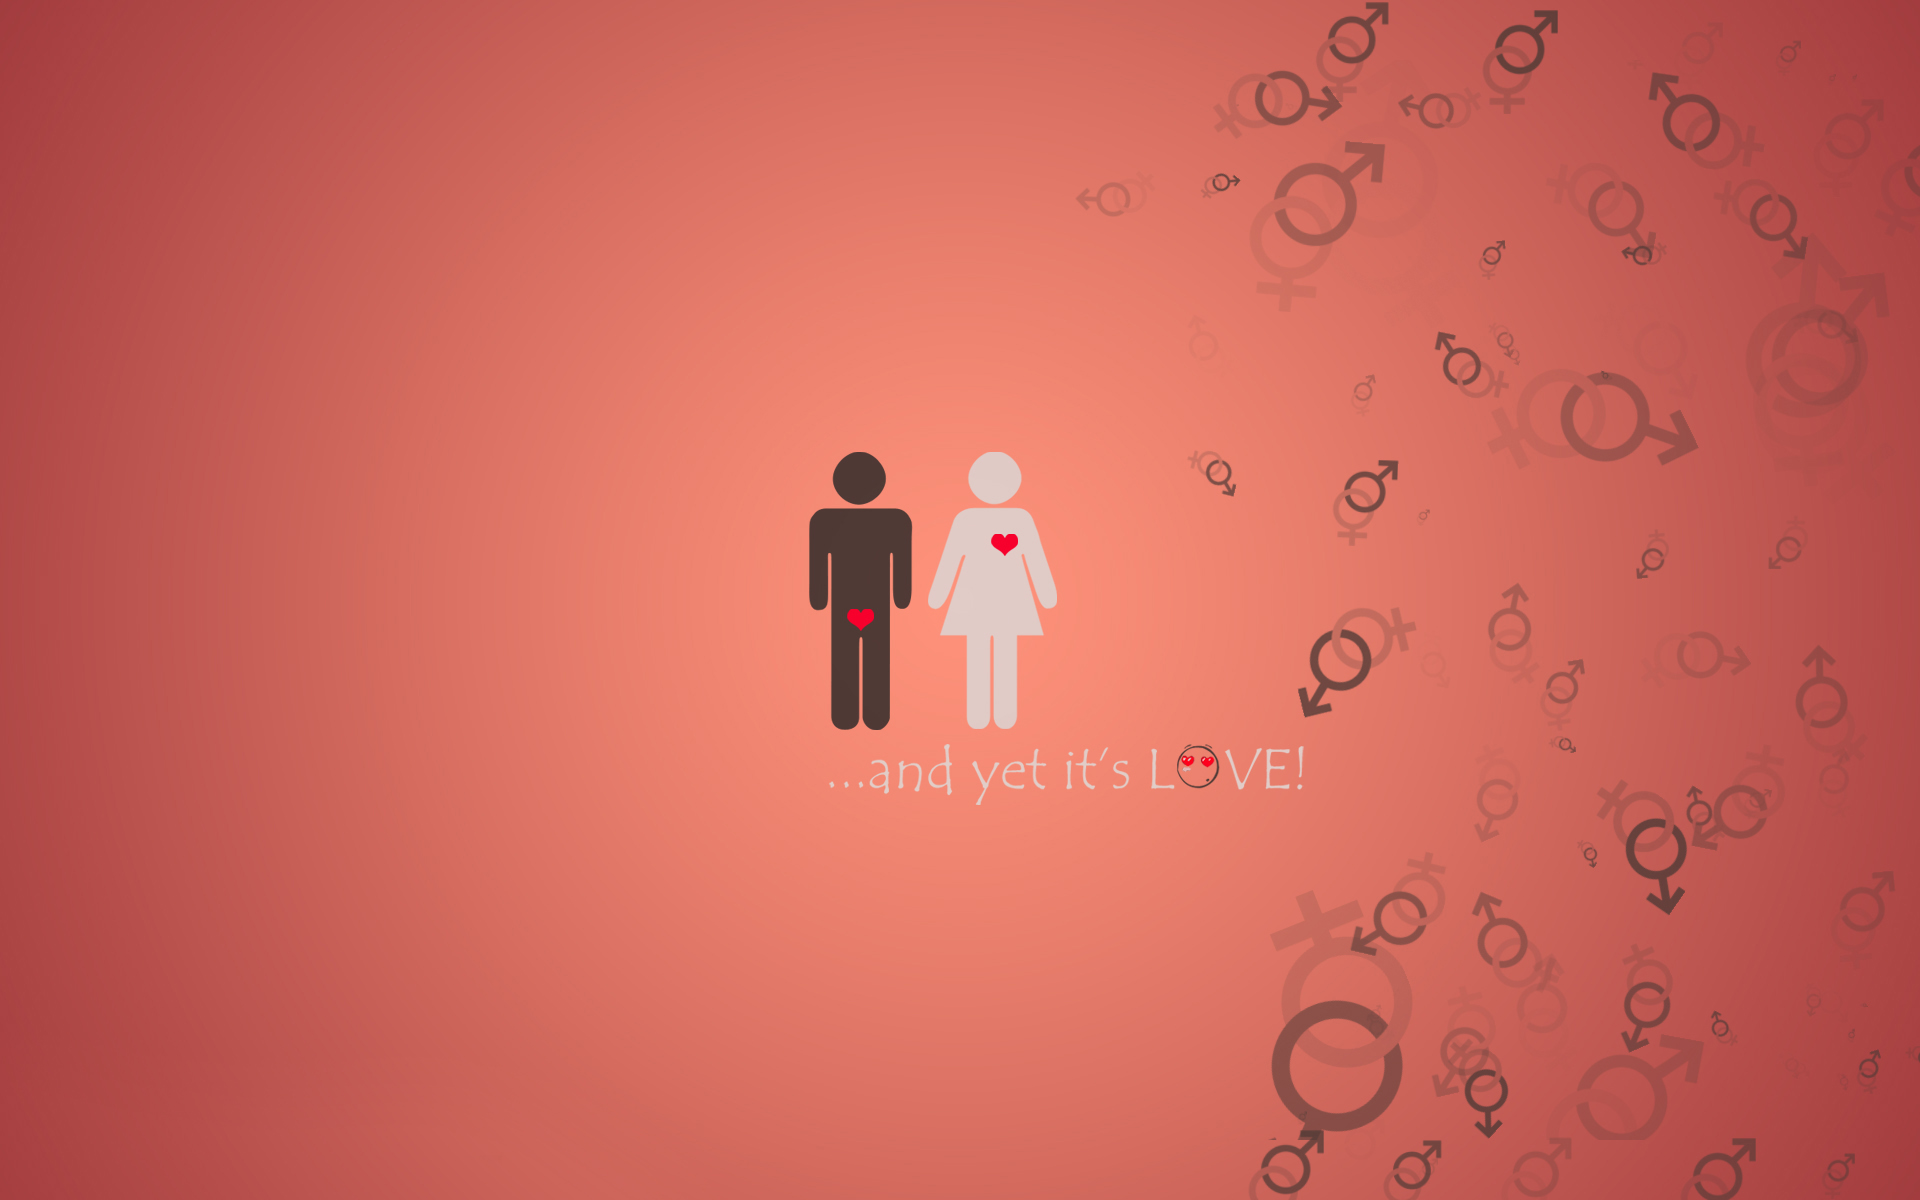 Love Free Wallpapers Download Group  1920x1200